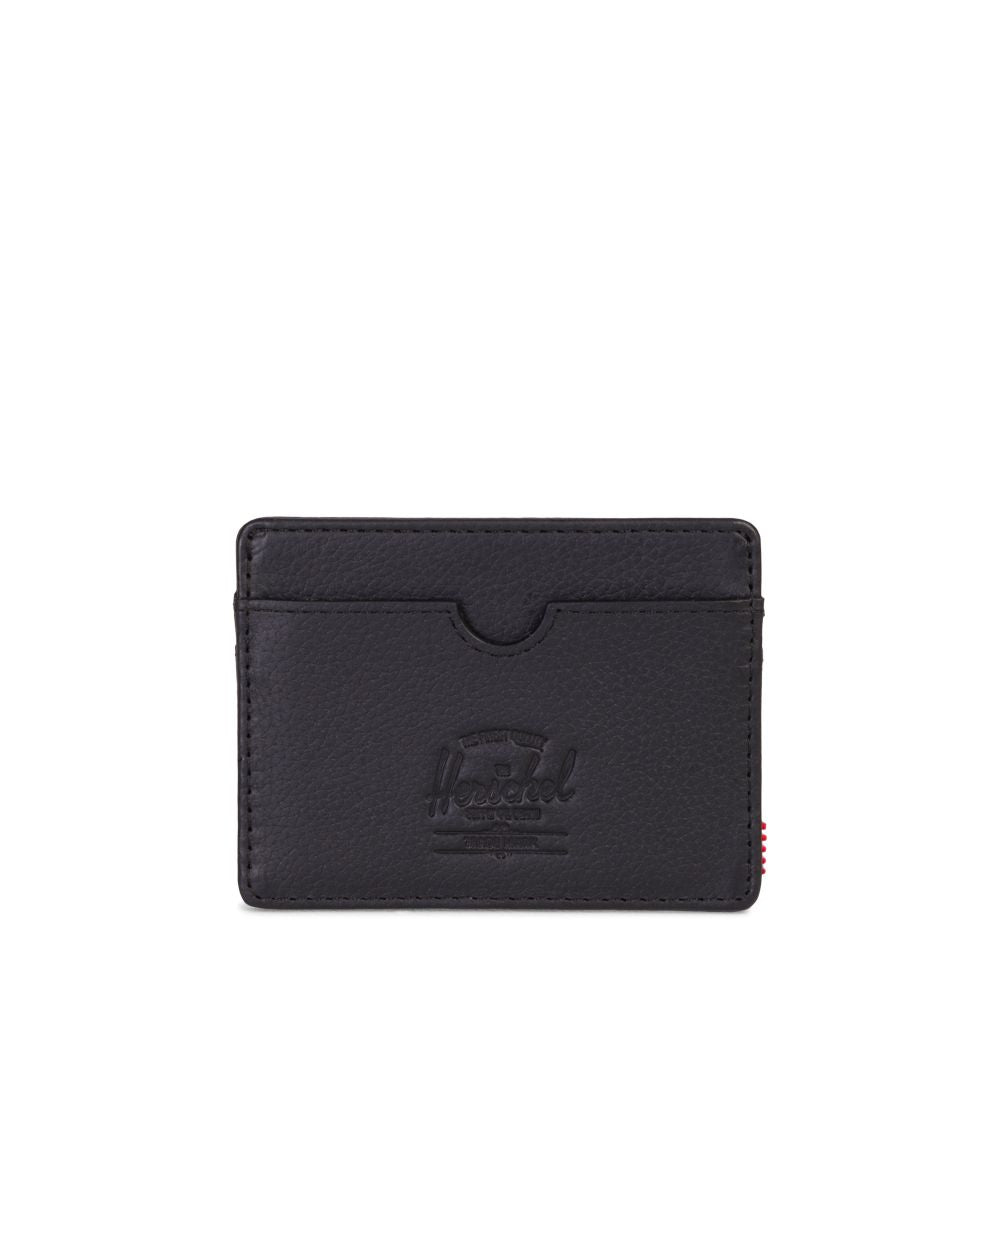 Cartera Charlie - Black Pebbled Leather